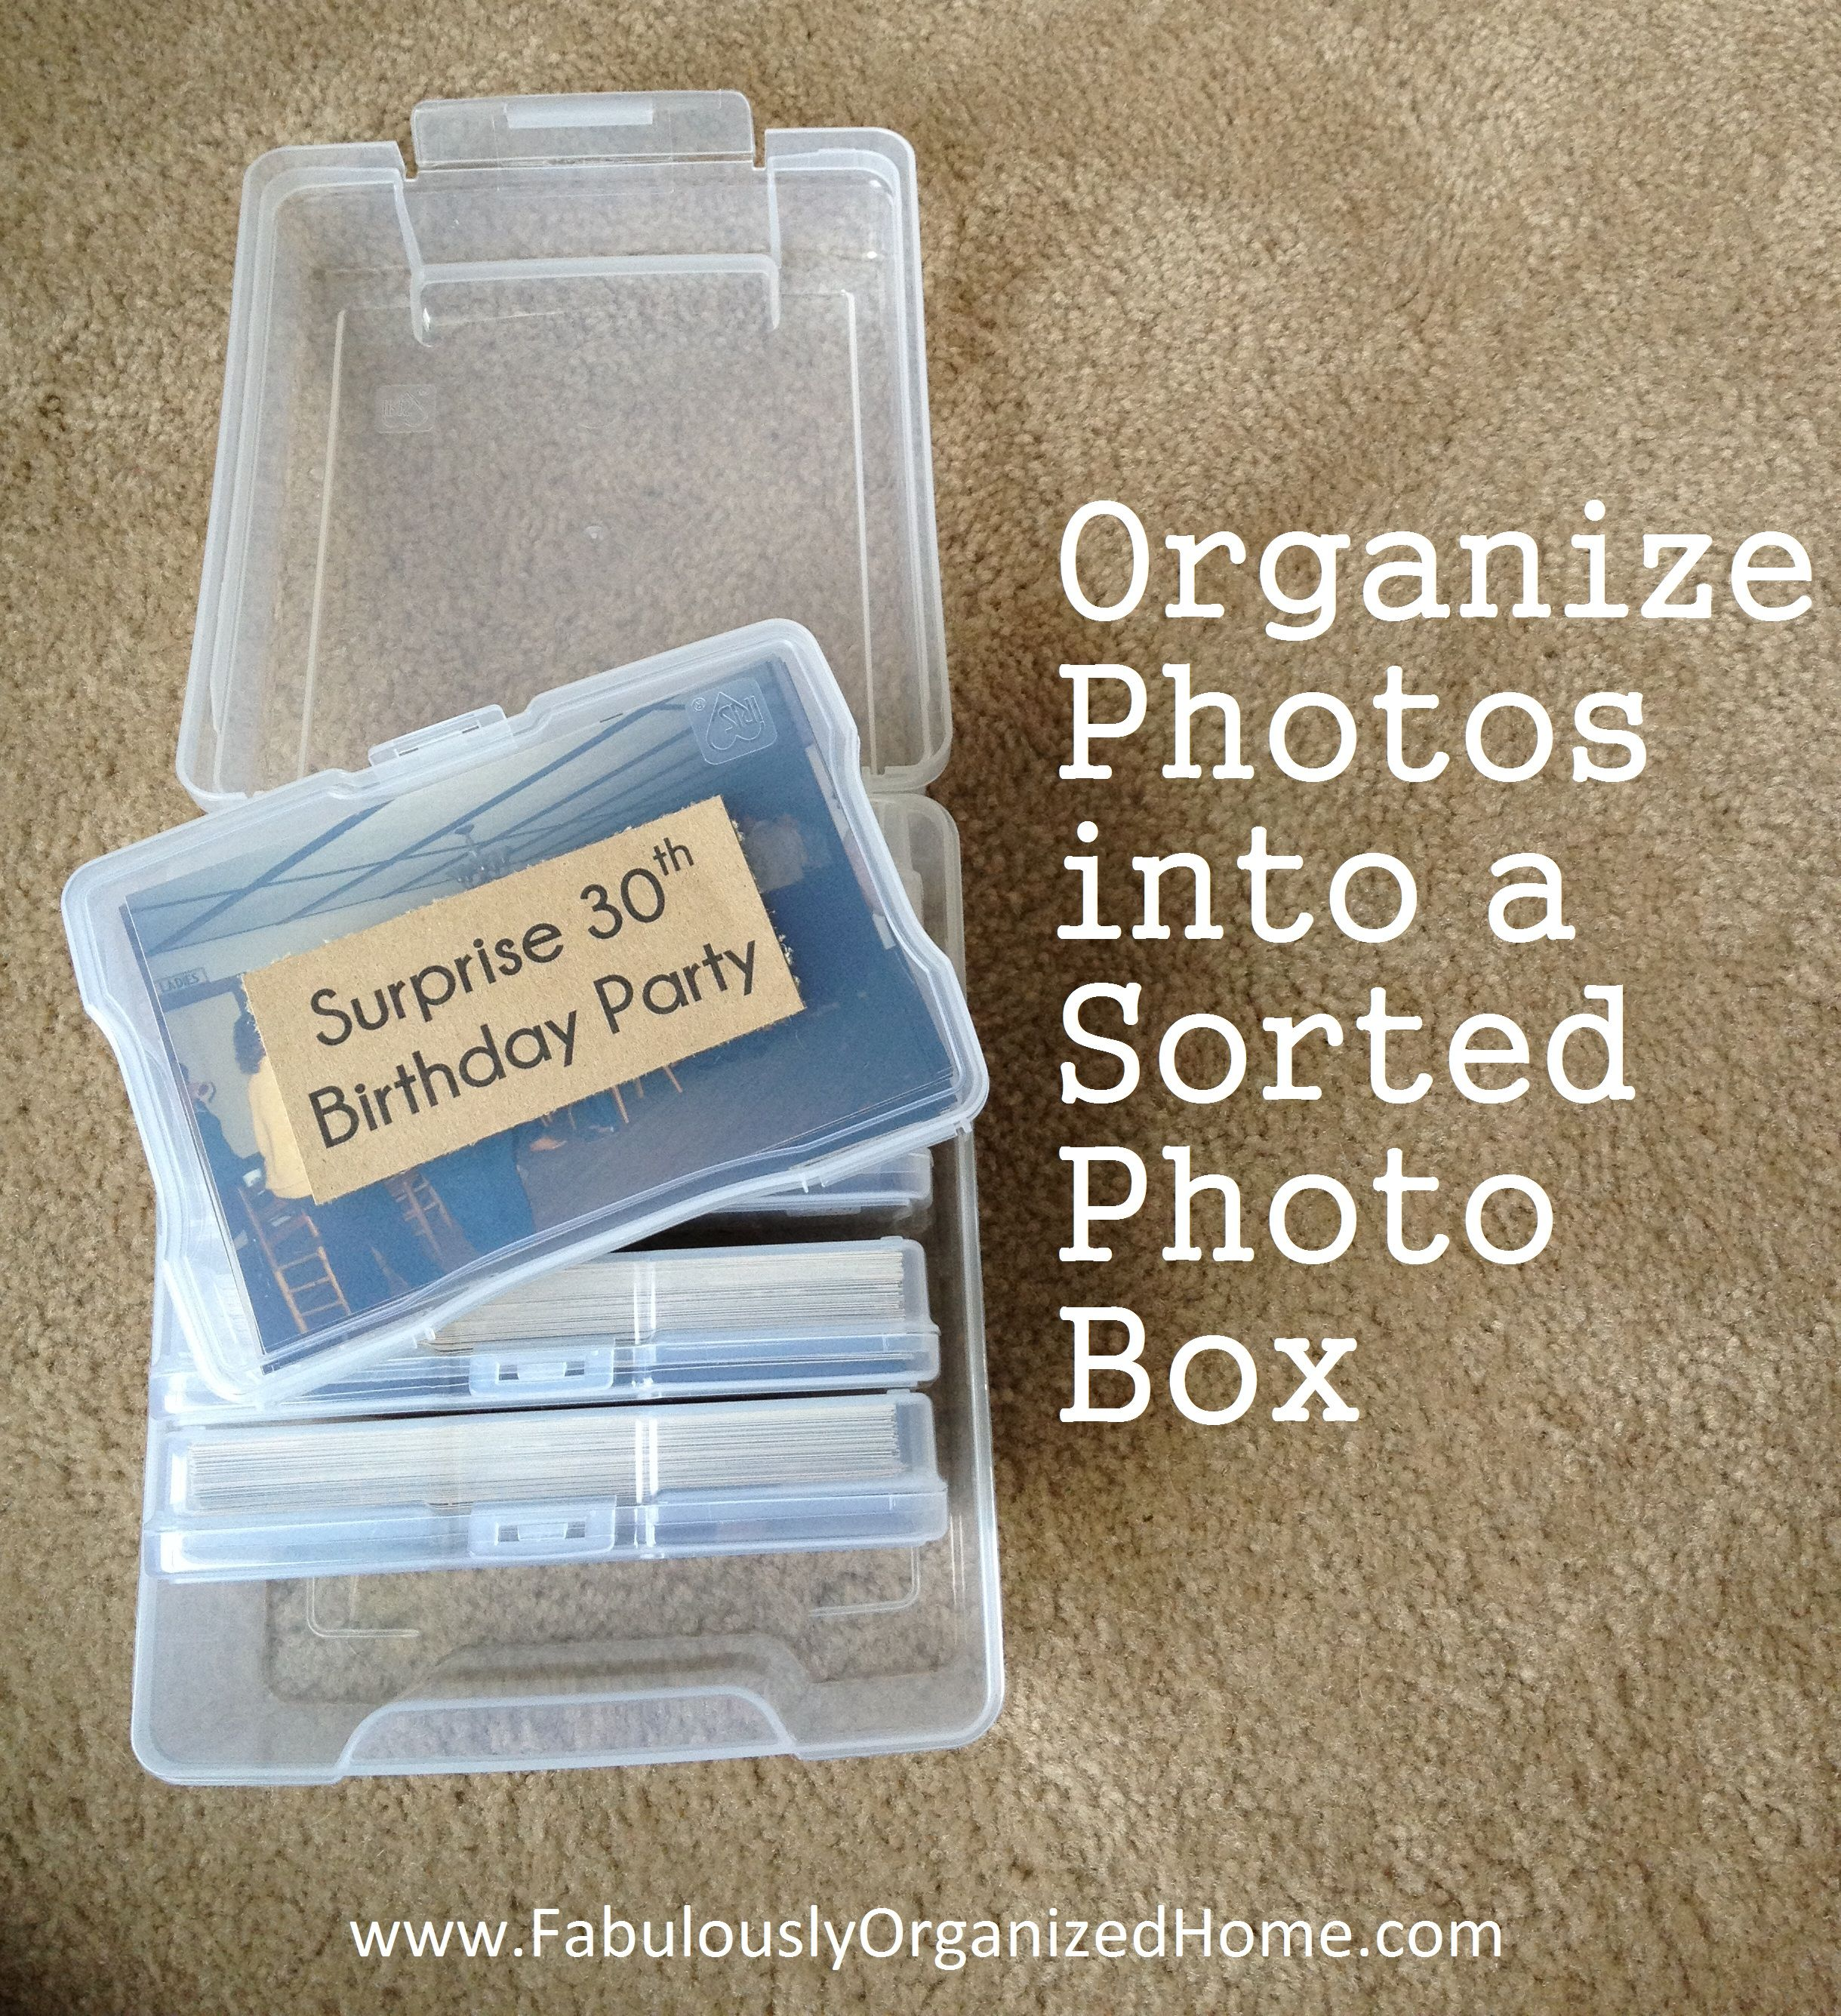 Organize Your Photos in a Containerized Photo Box // SimplyFabulousLiving.com